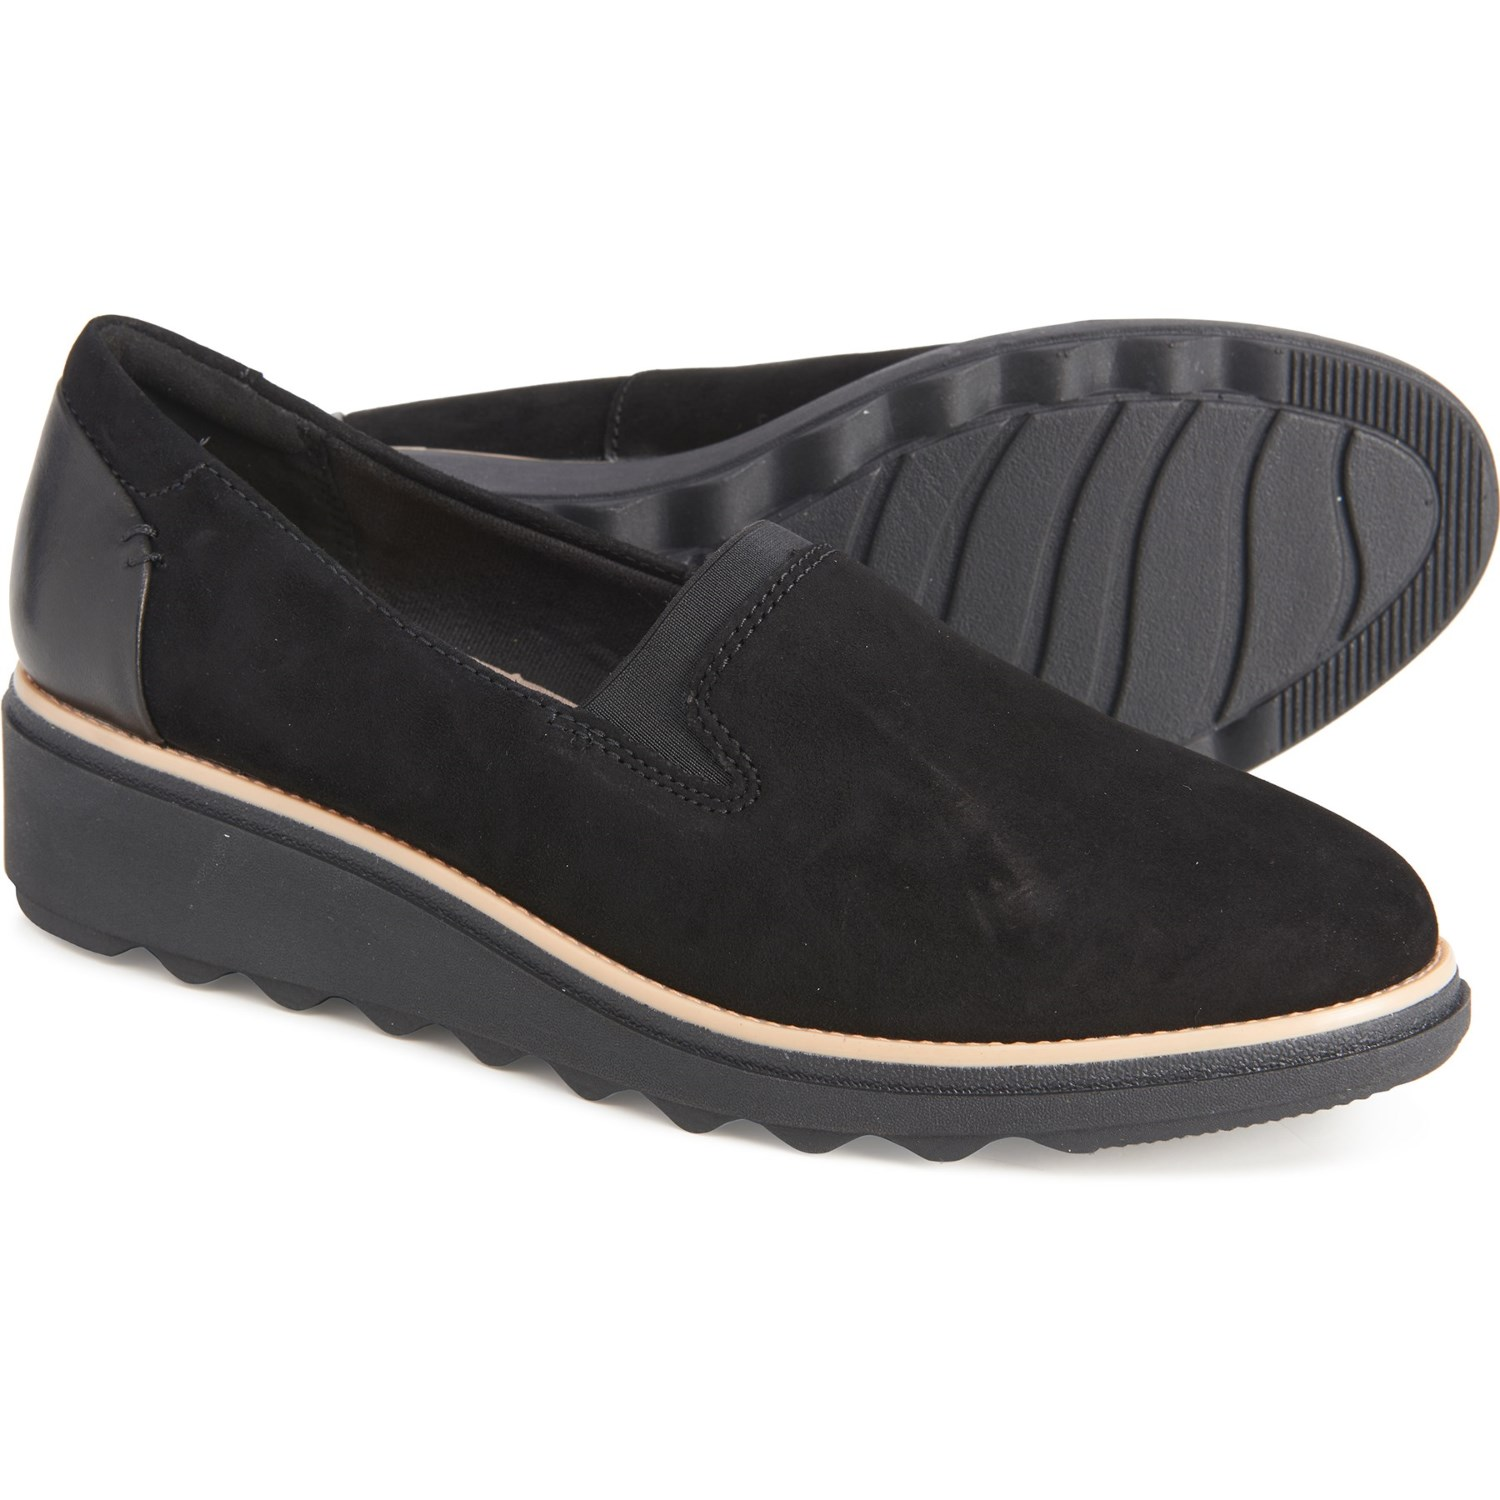 Clarks Sharon Dolly Wedge Shoes (For